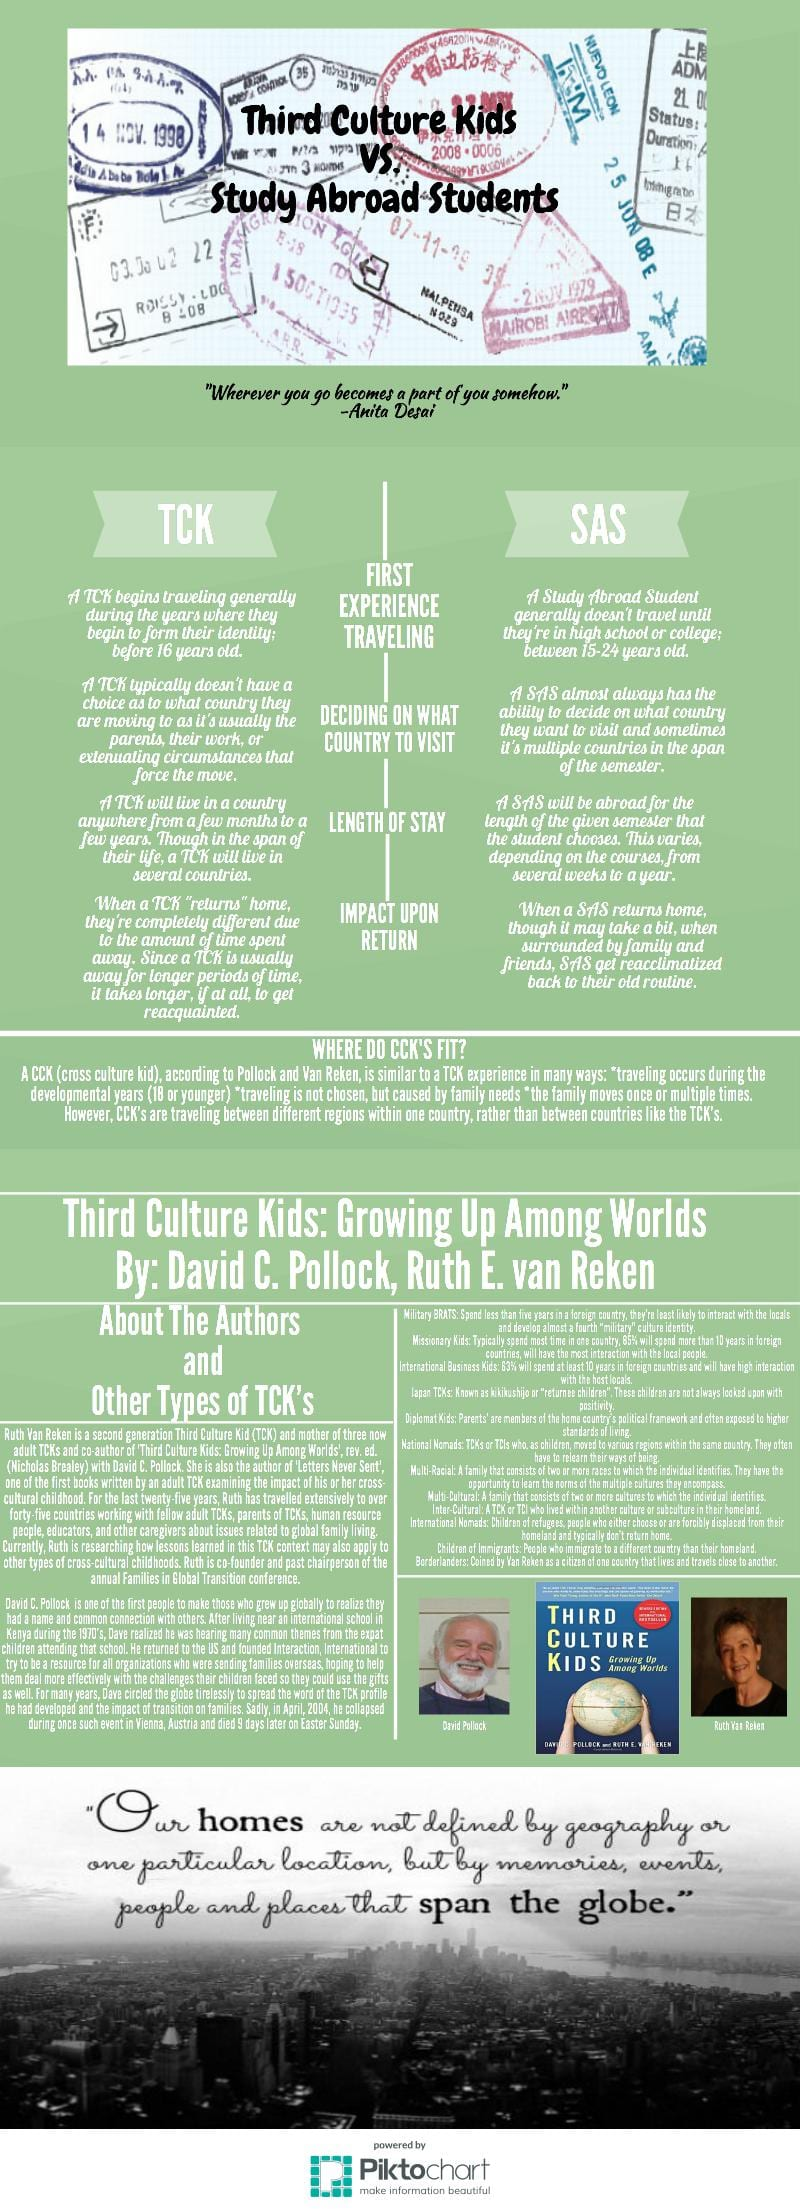 third-culture-kids-vs-study-abroad-students-2